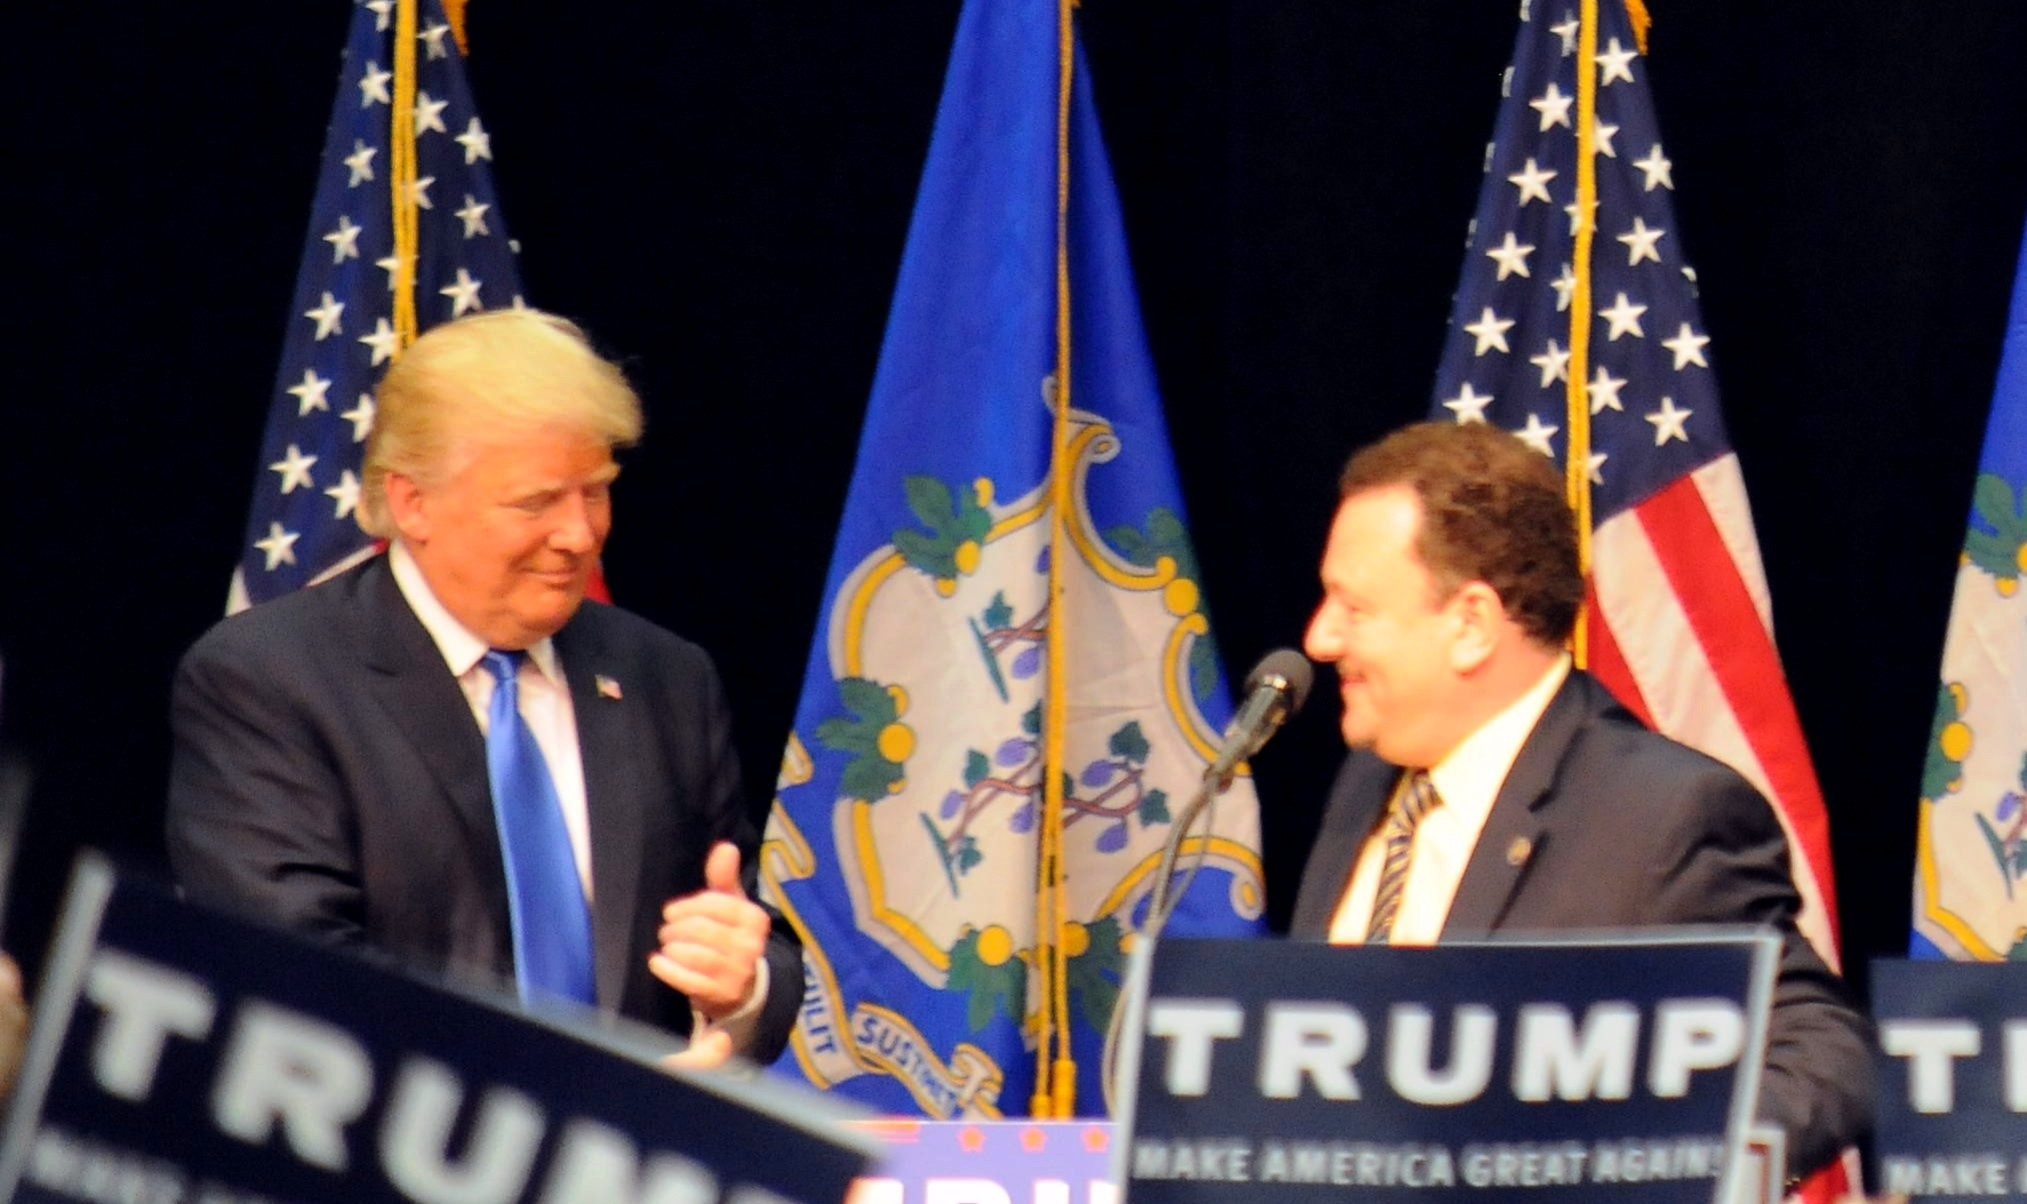 Establishment well-represented among Trump's CT delegates